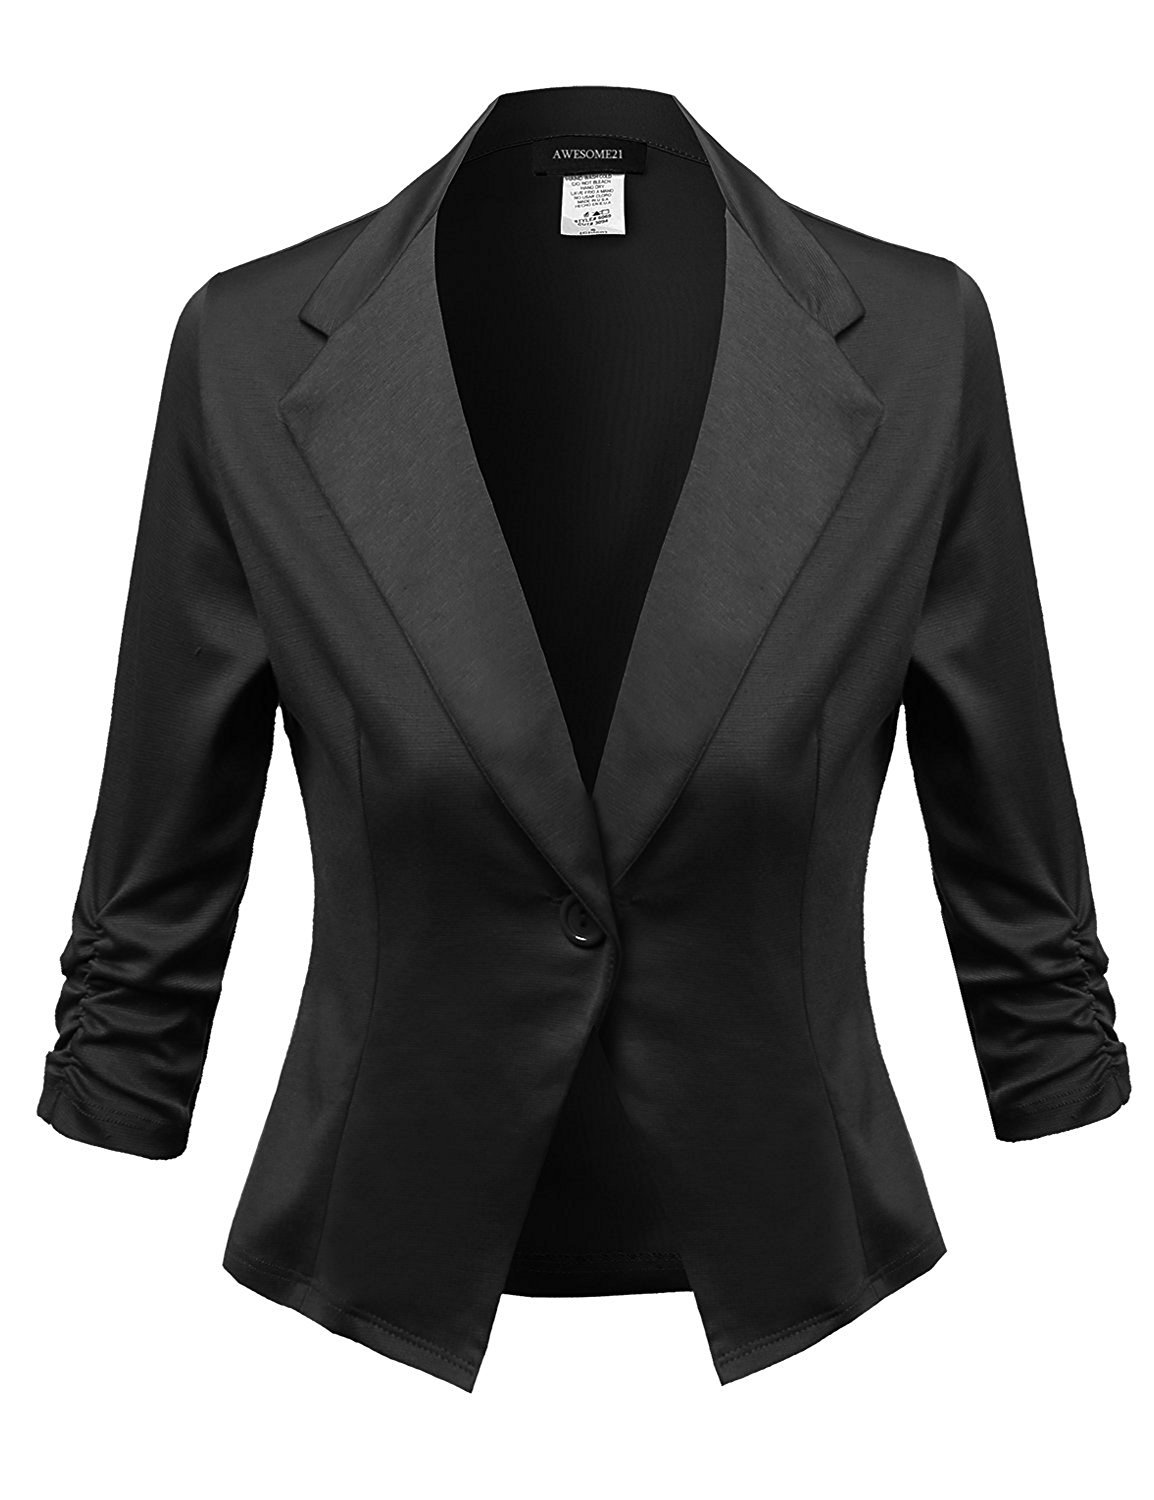 Awesome21 Women's Solid Stretchable Comfortable Blazer Jacket GogoUS